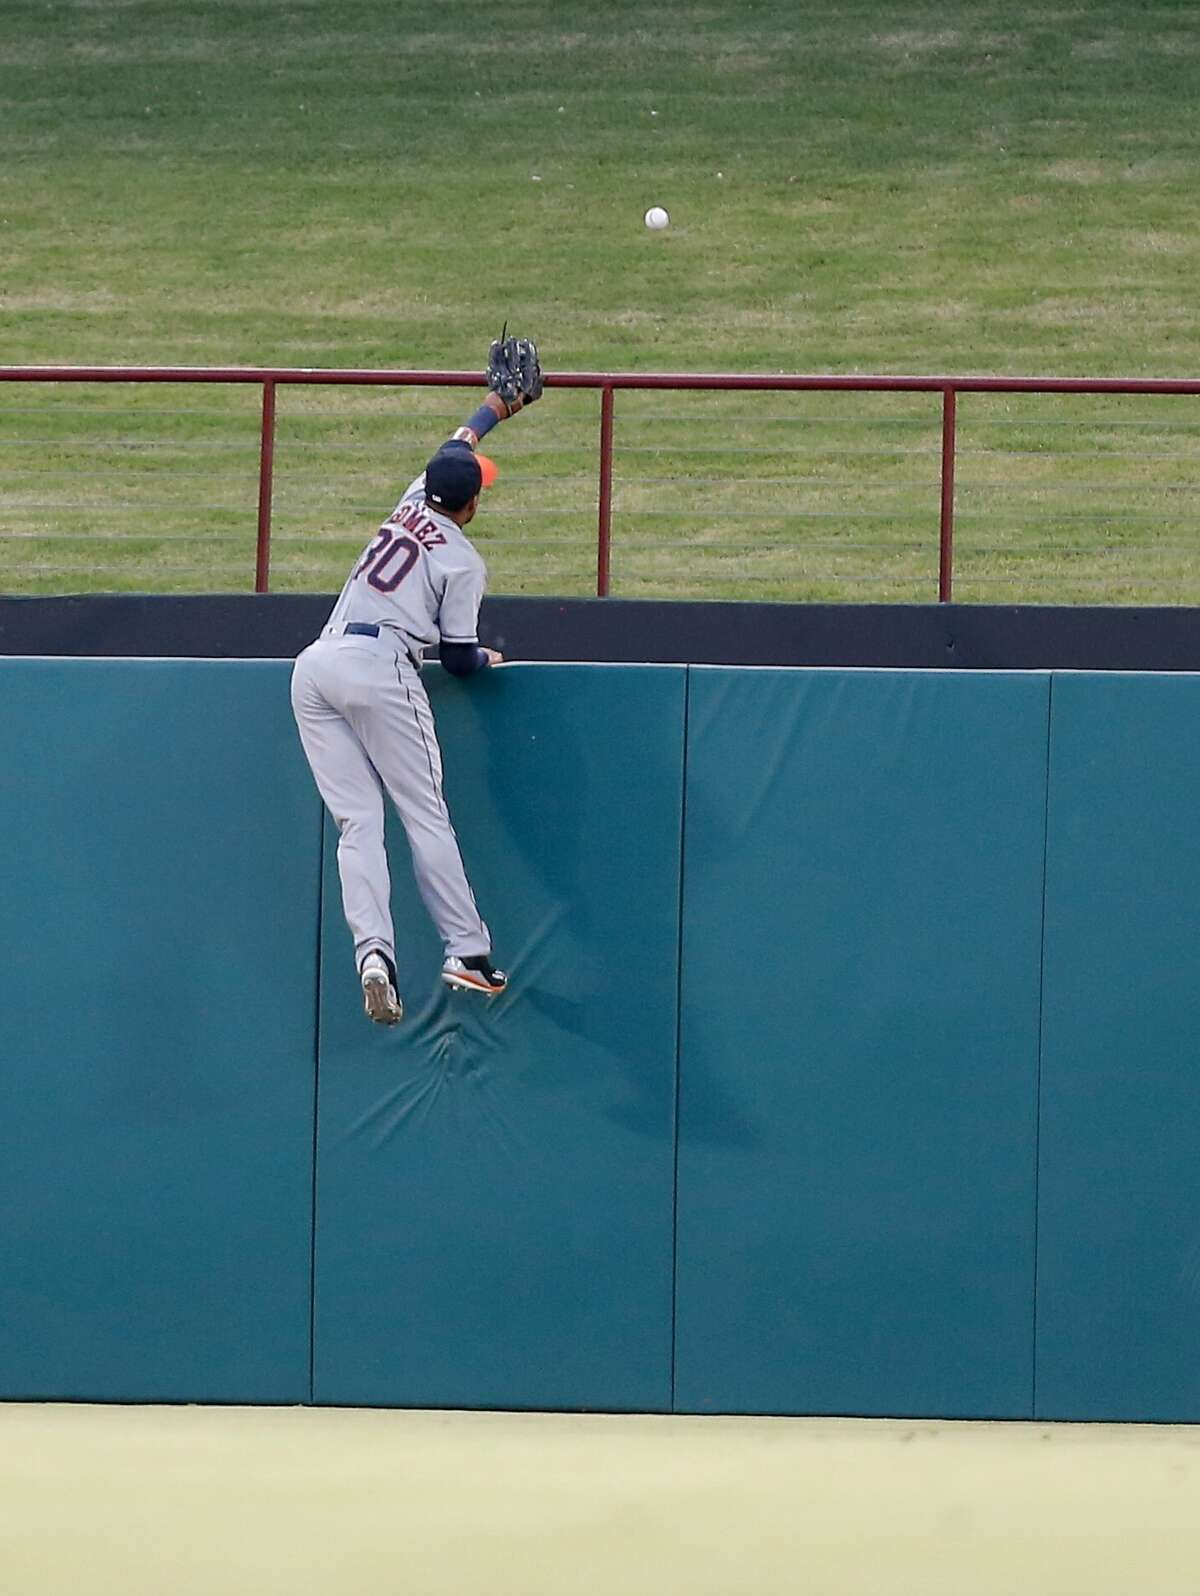 A valiant effort by Astros center fielder Carlos Gomez fails to prevent a home run hit by the Rangers' Bobby Wilson in the fifth inning.